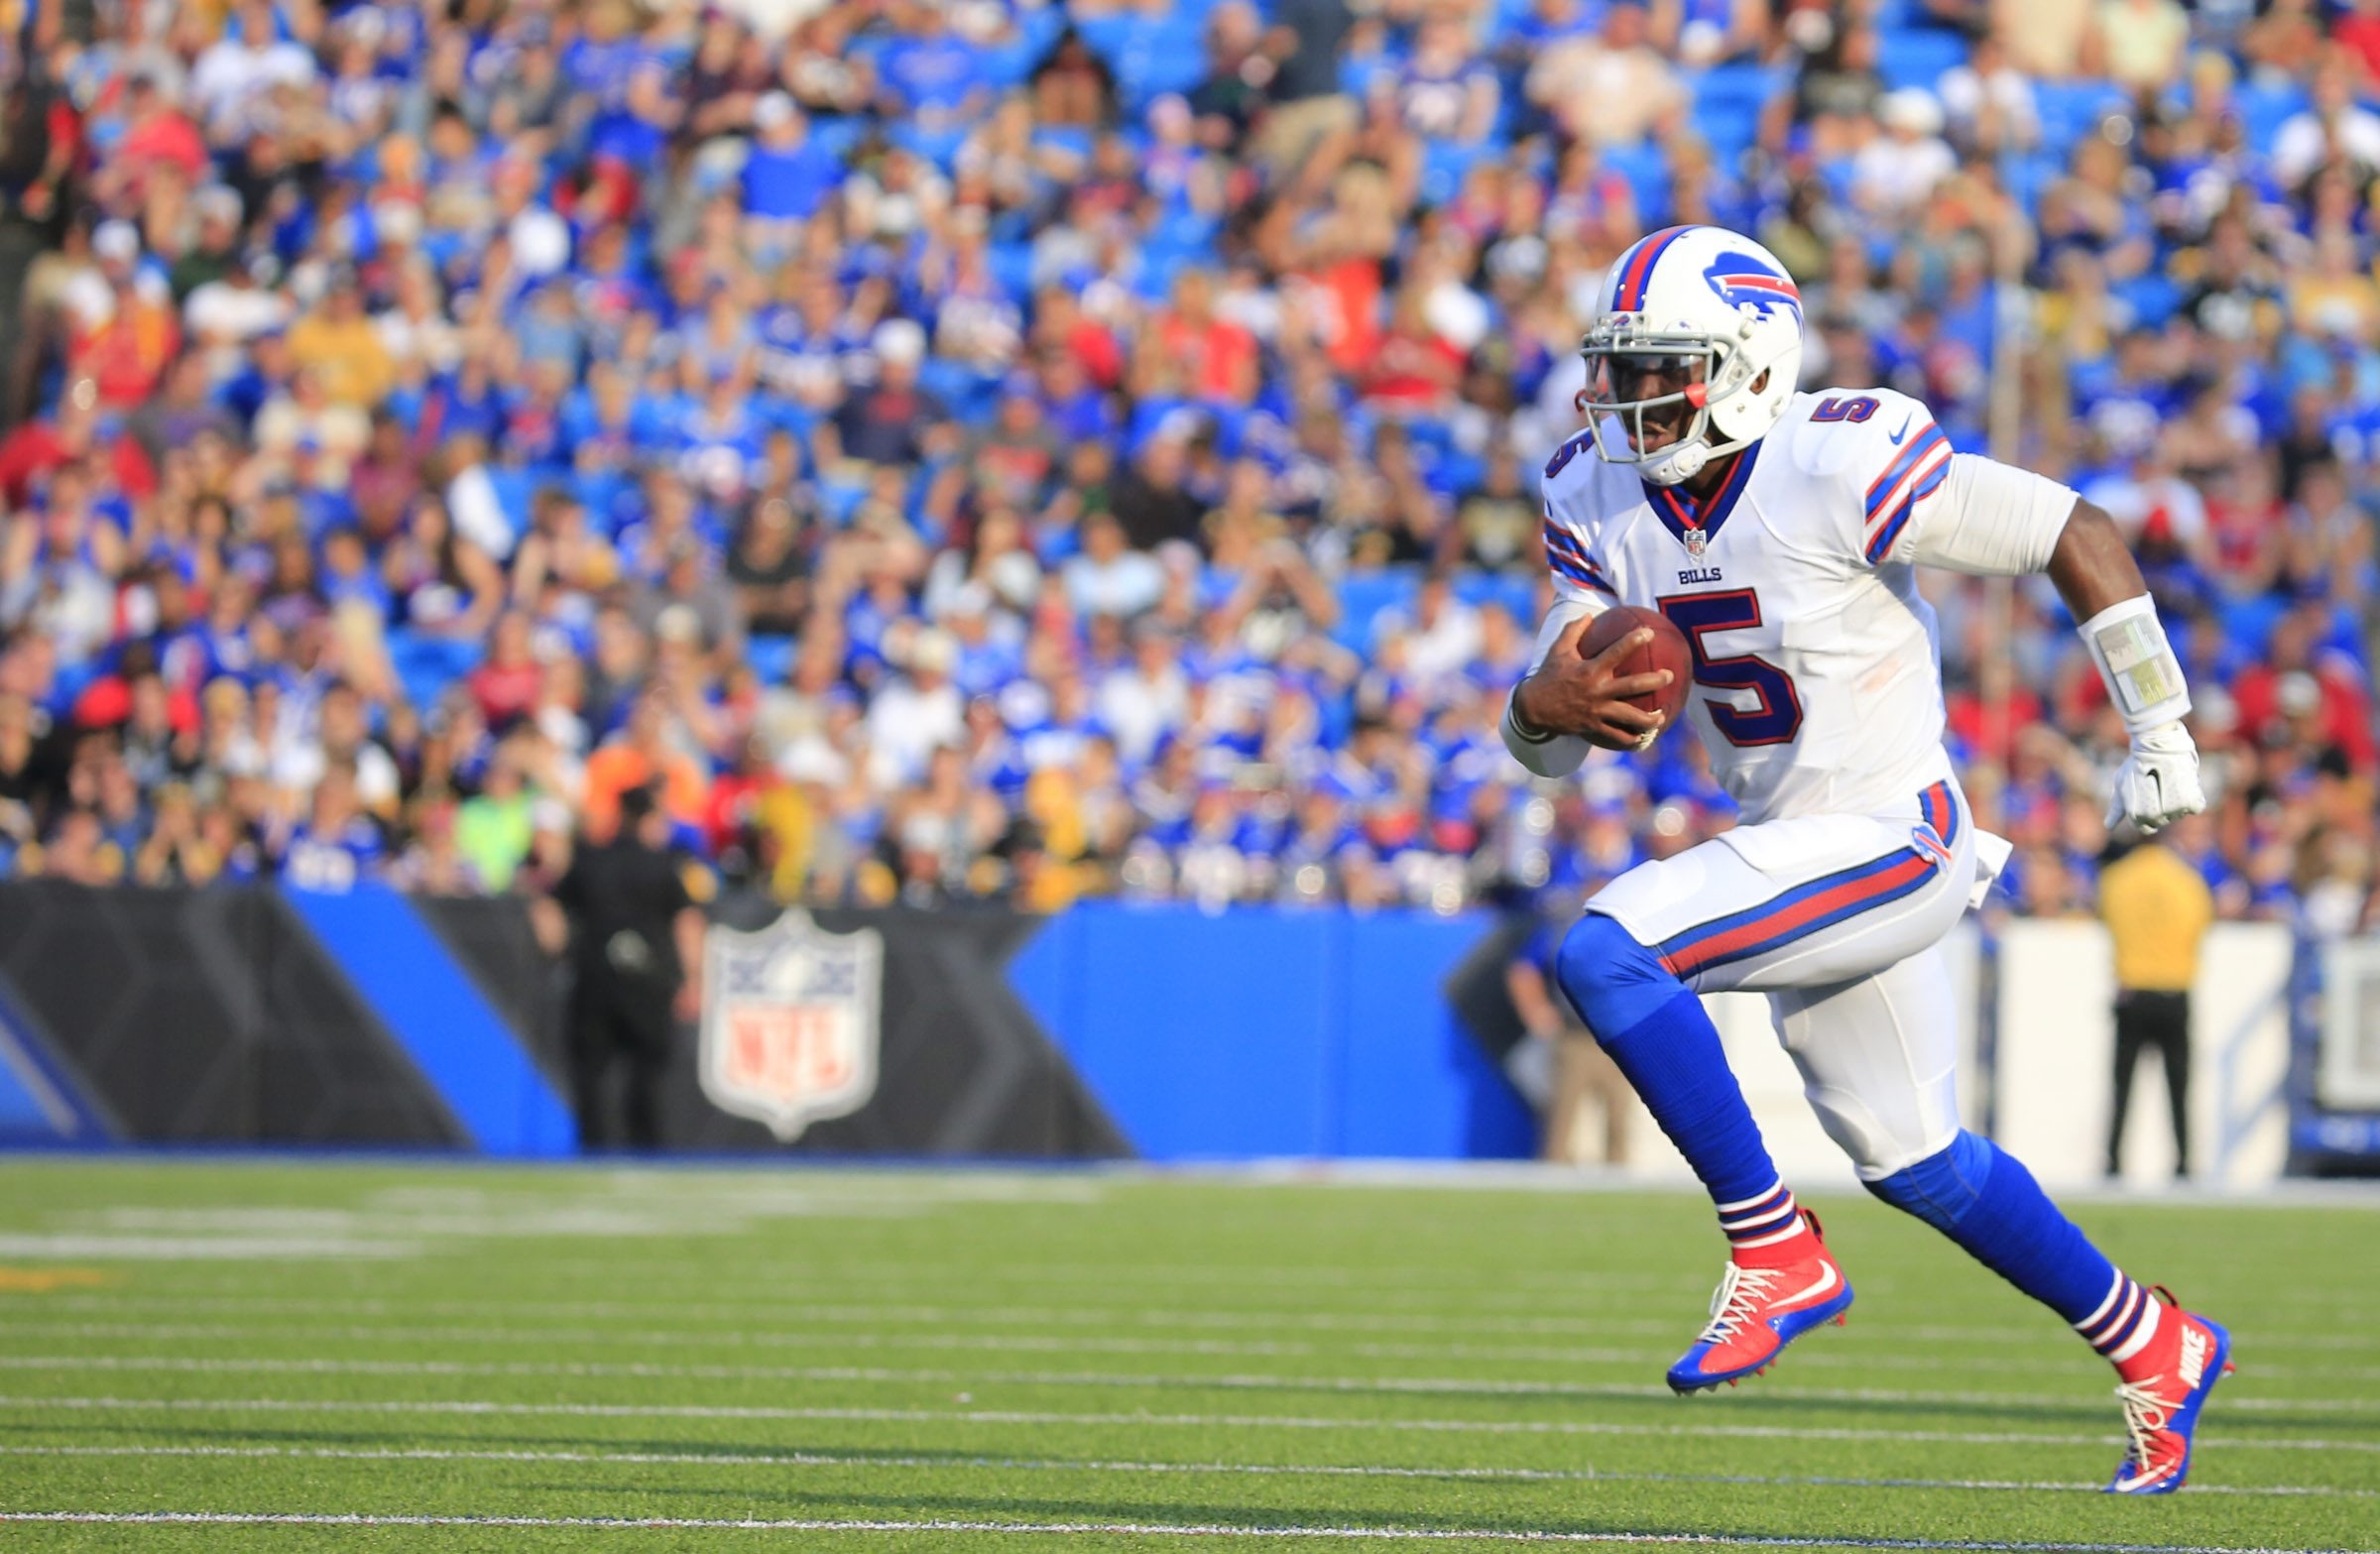 Buffalo's Tyrod Taylor runs with the ball during second-half action against the Pittsburgh Steelers at Ralph WIlson Stadium on Aug. 29. (Harry Scull Jr./Buffalo News)